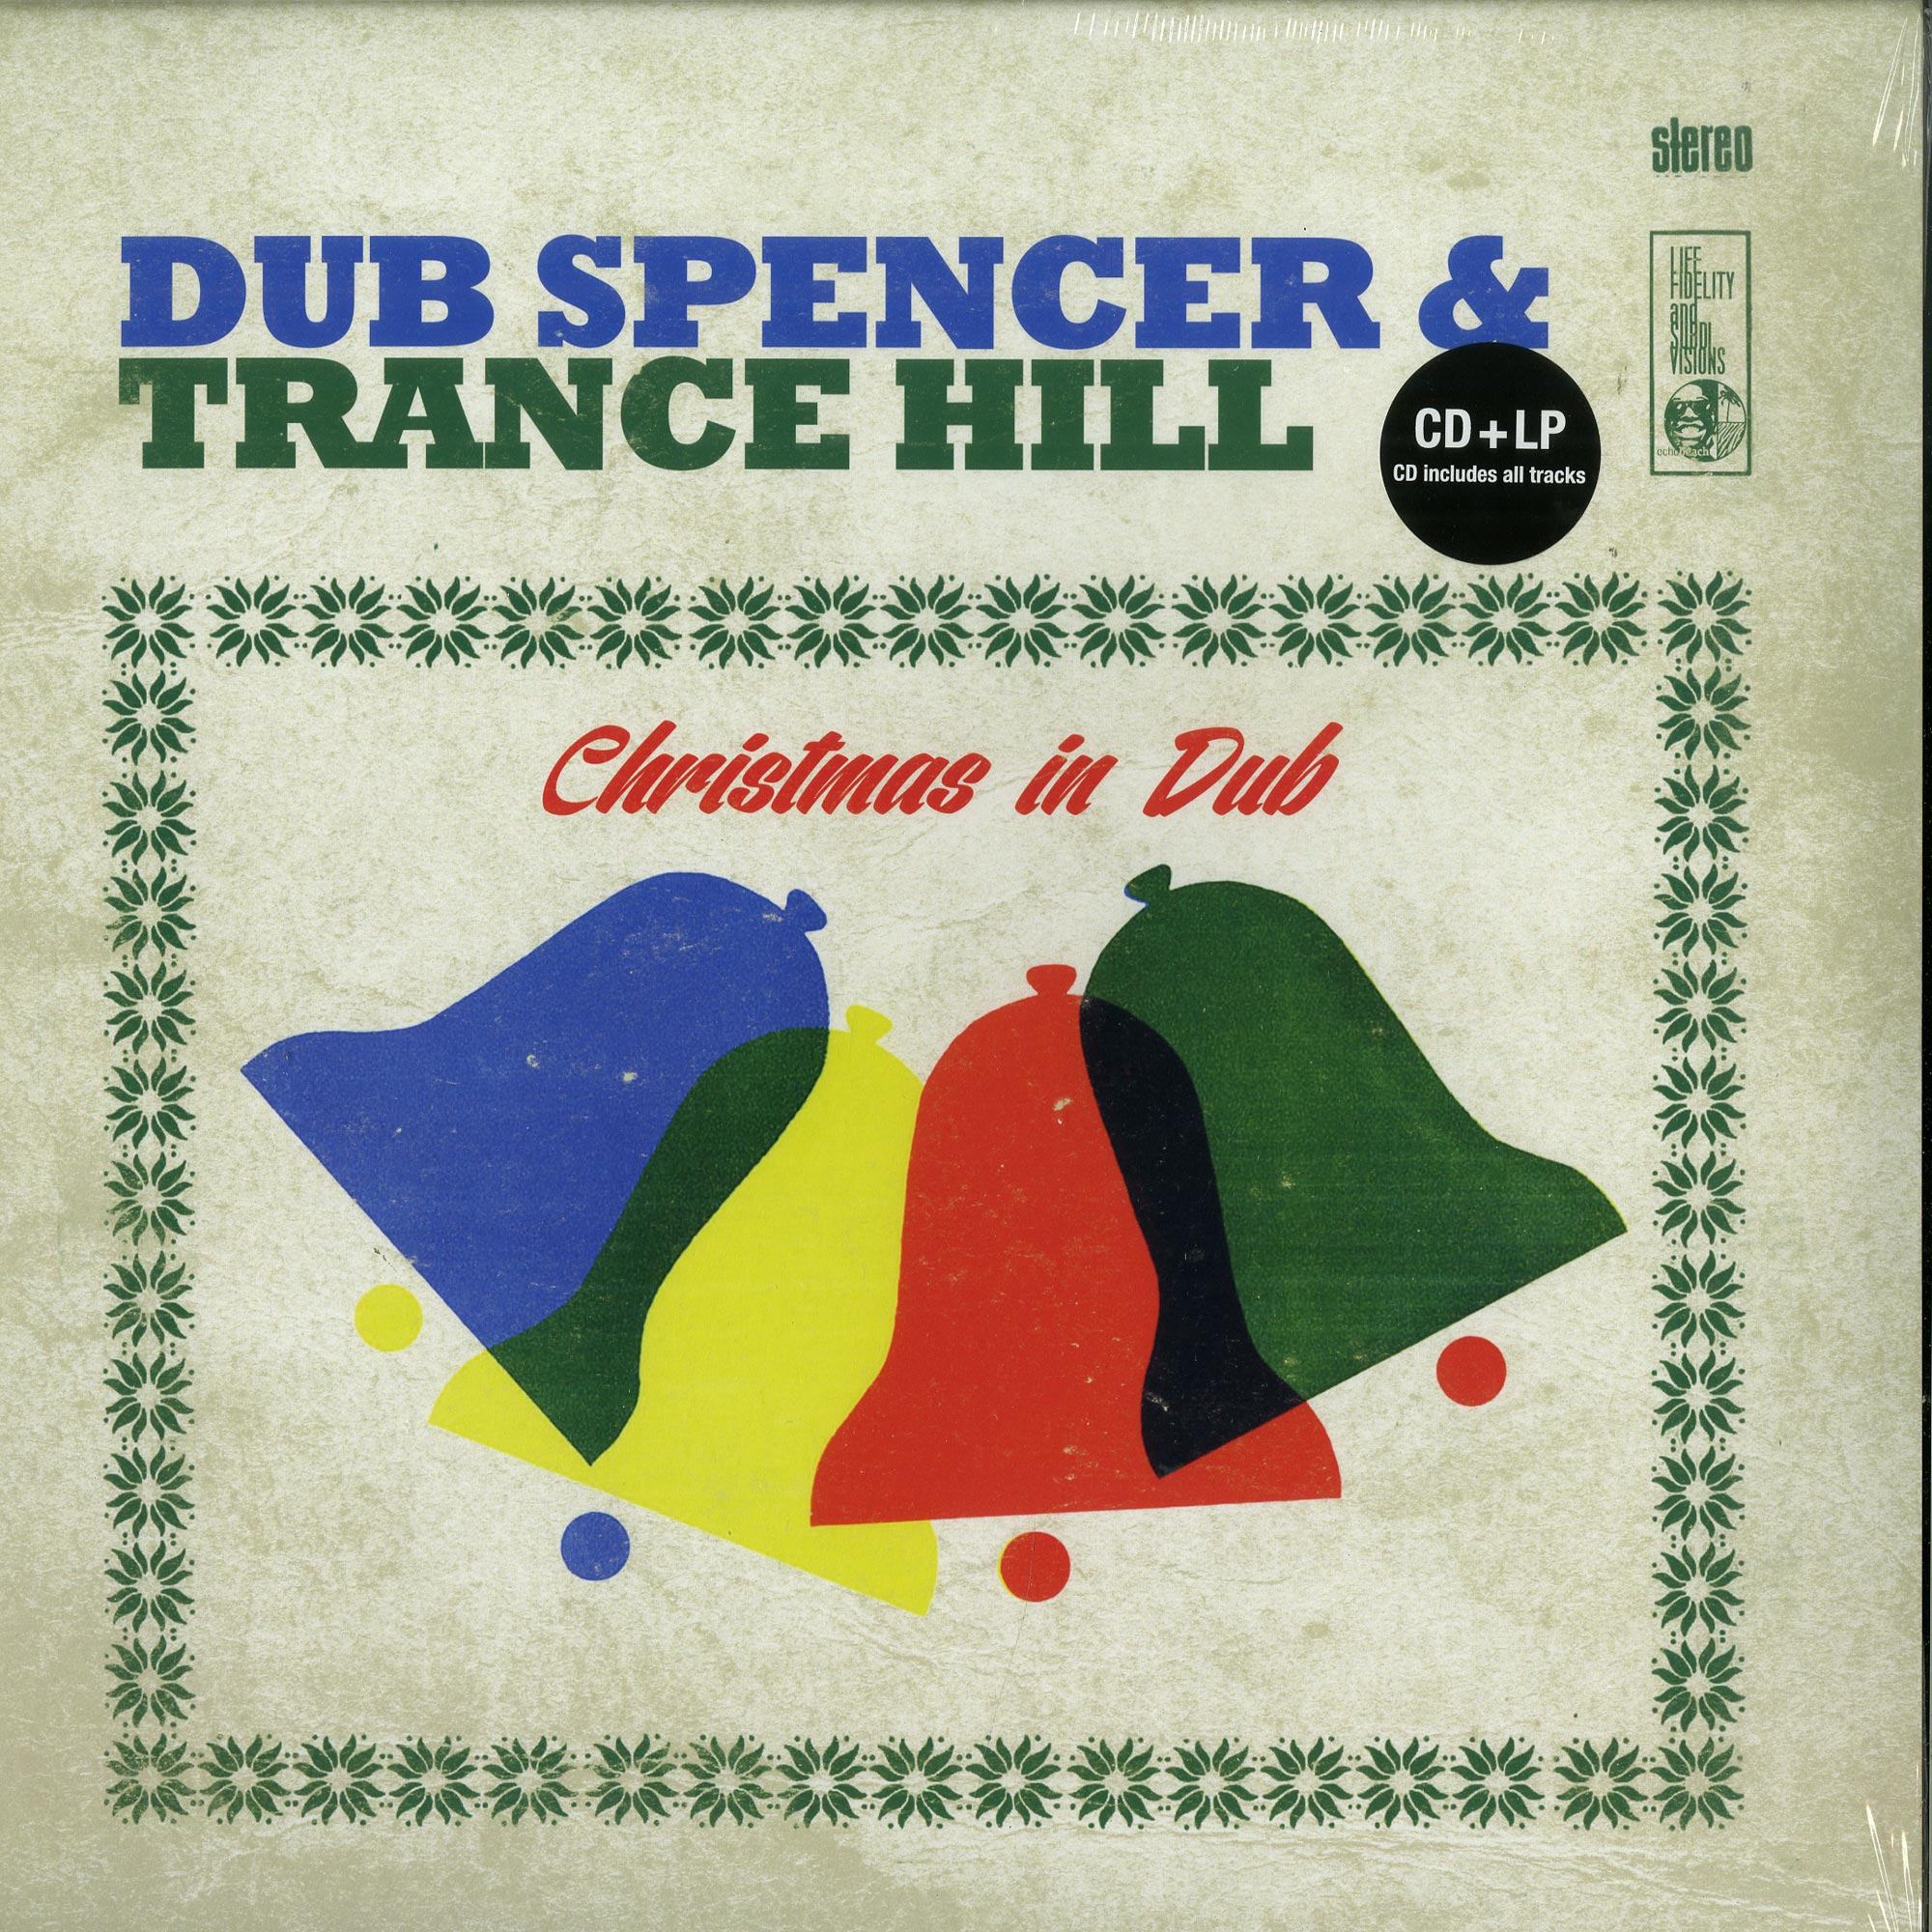 Dub Spencer & Trance Hill - CHRISTMAS IN DUB